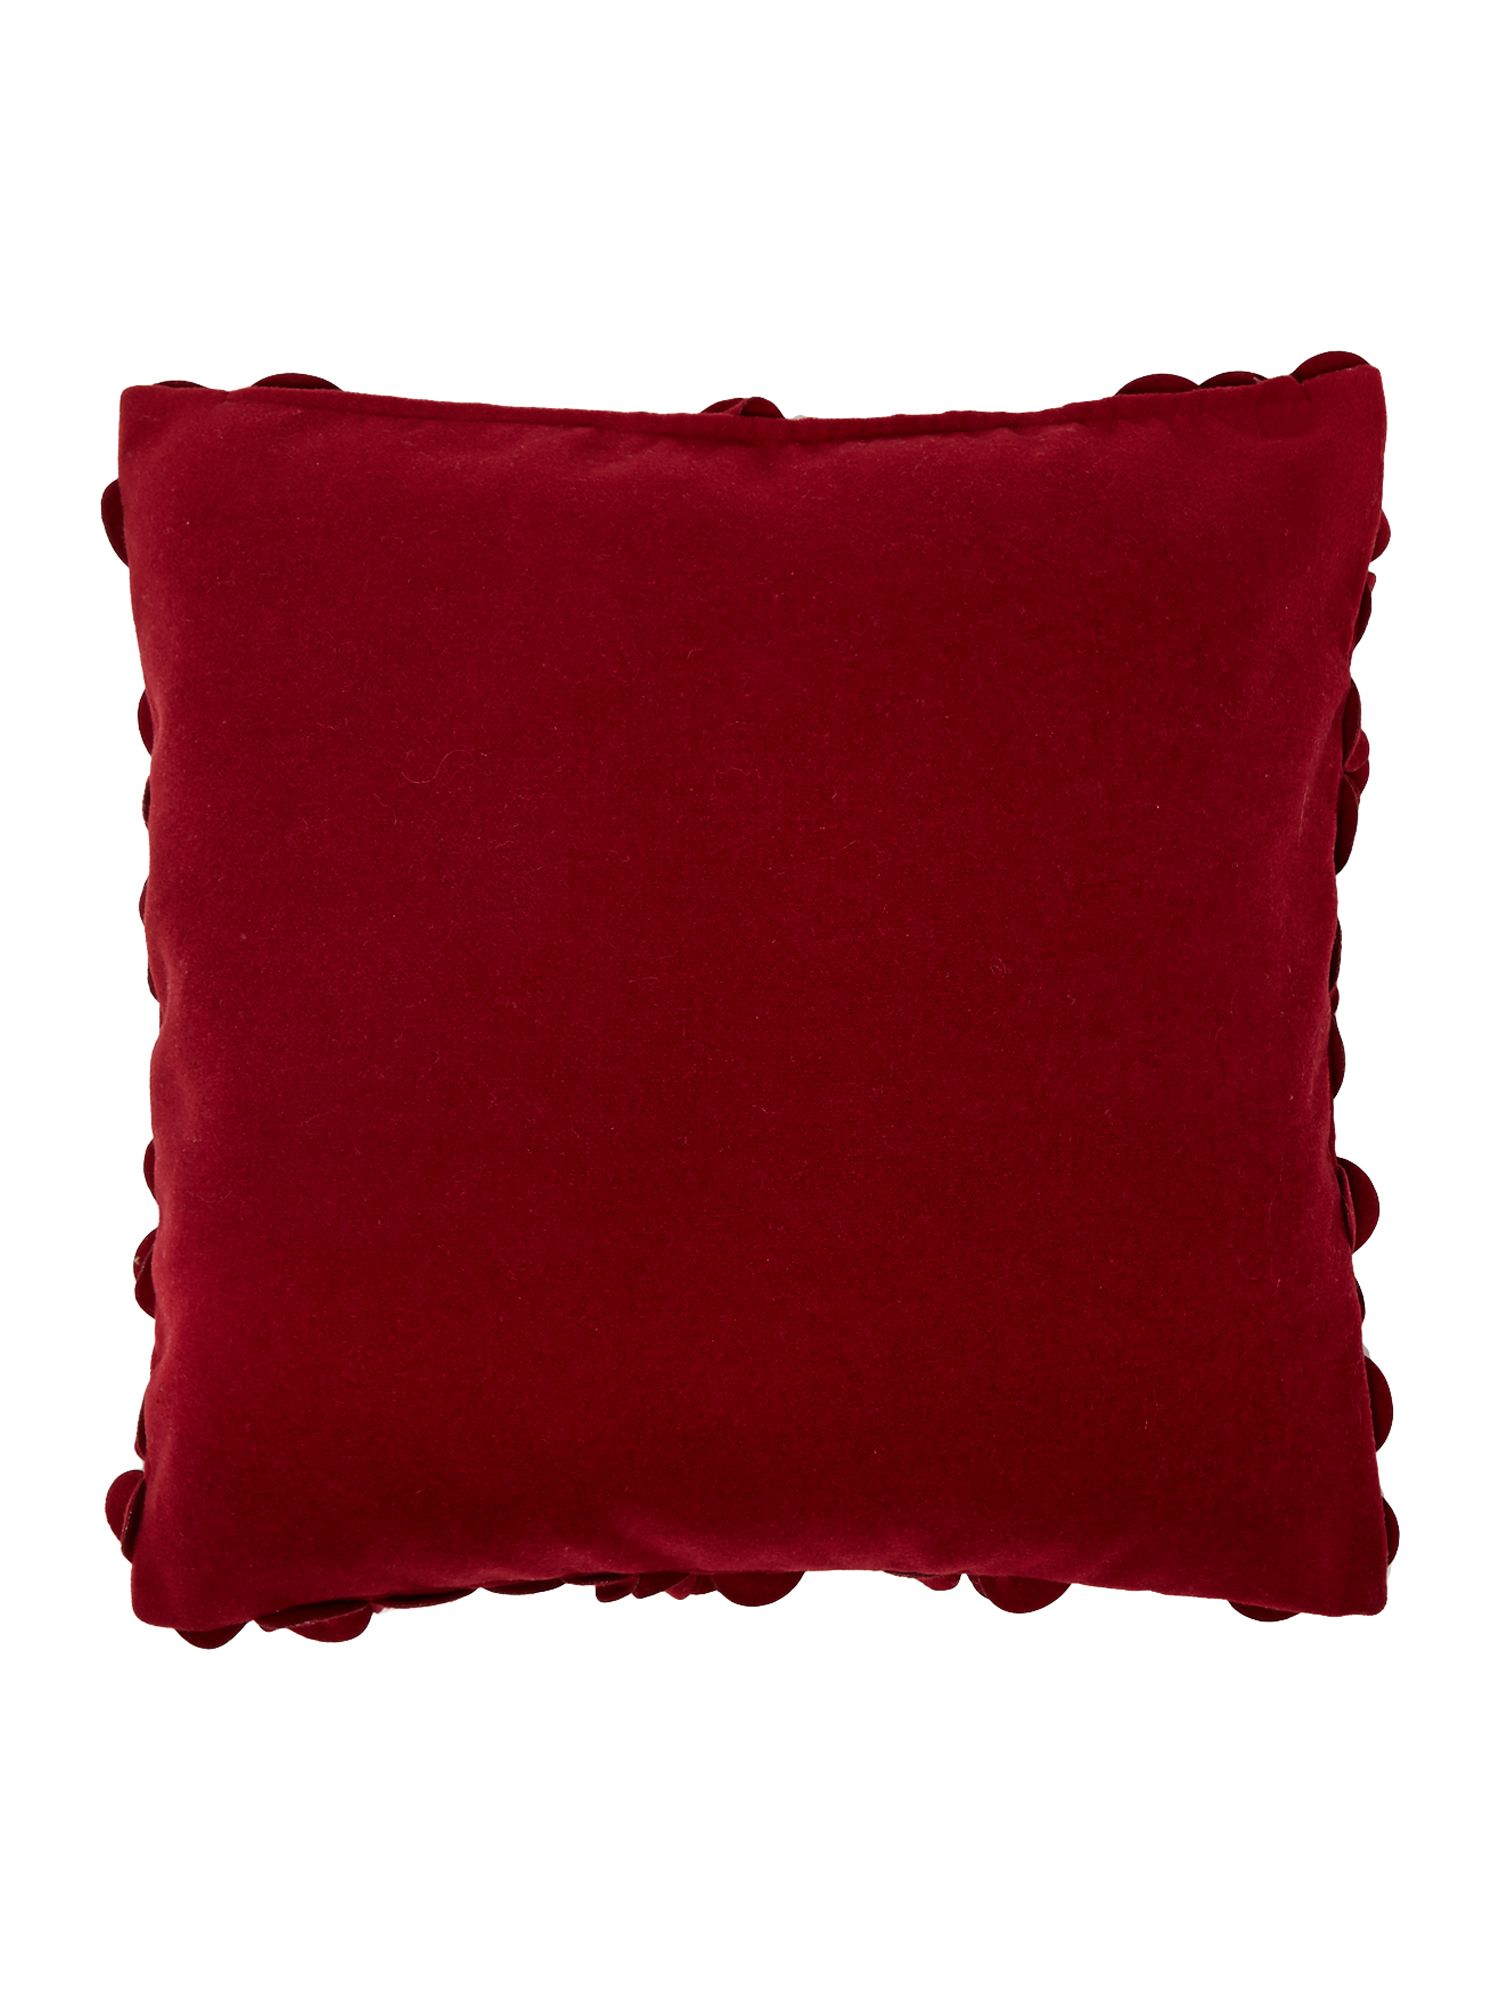 Rose felt cushion, Red